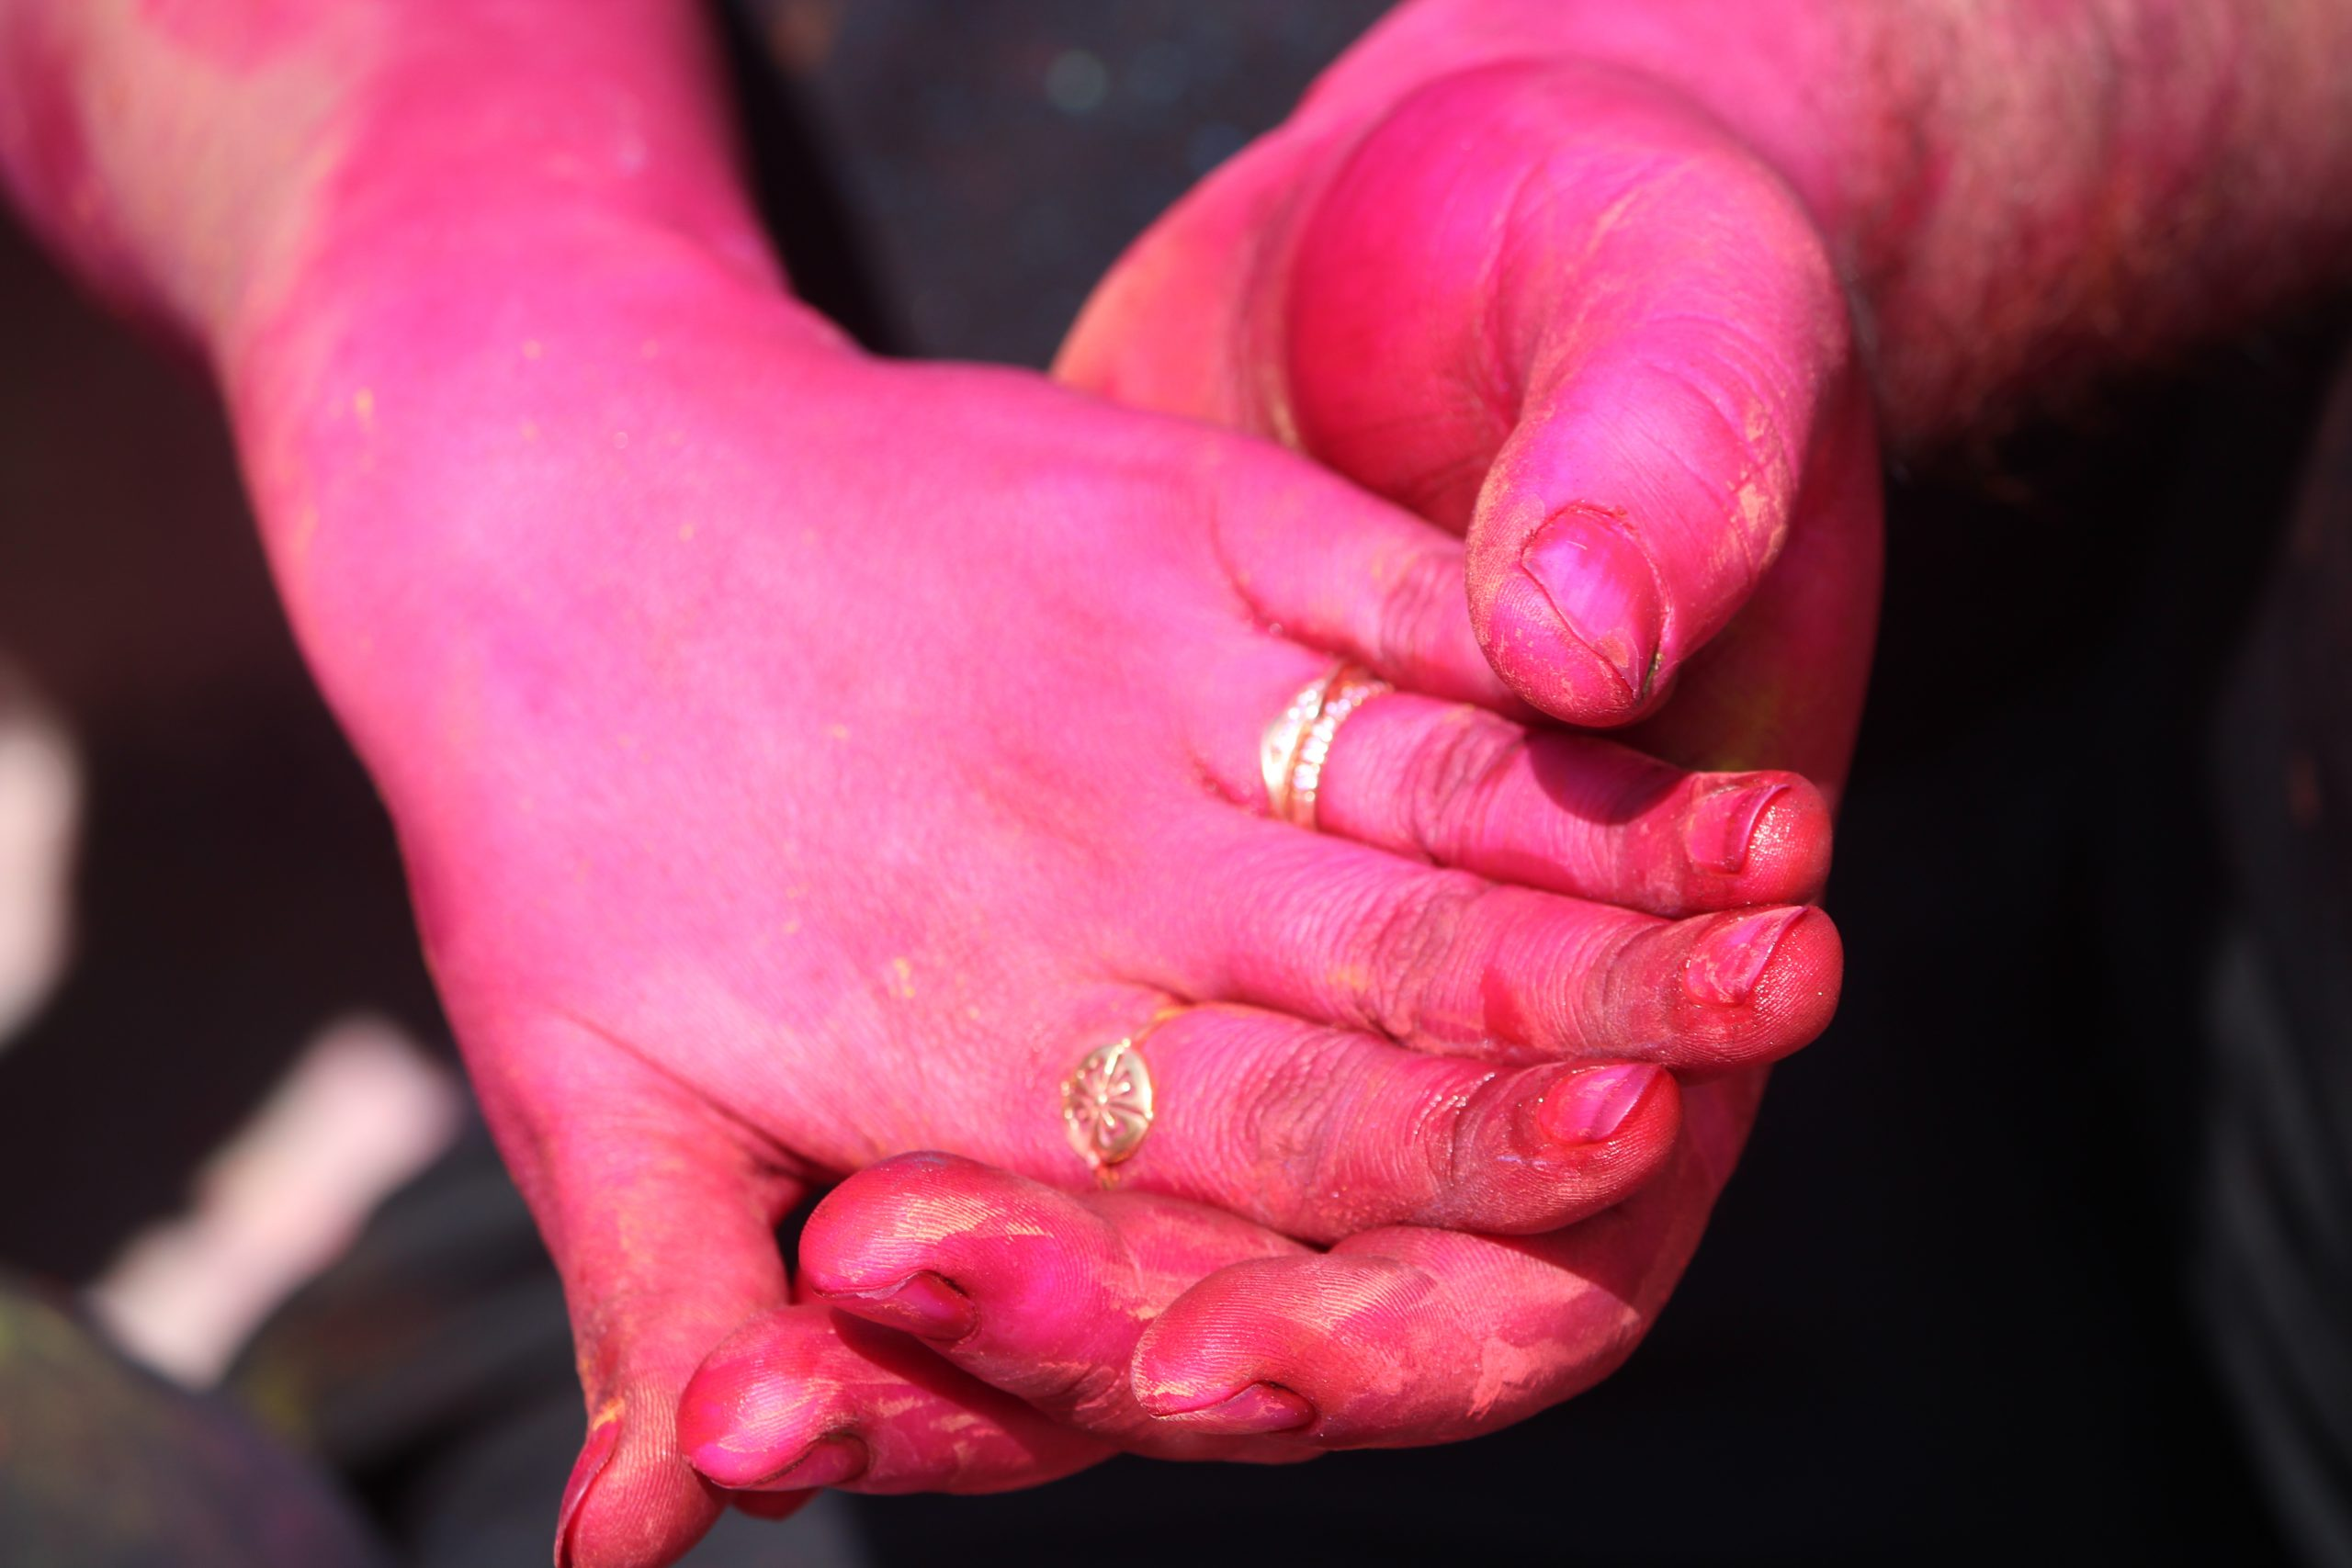 Hands painted with Holi colors